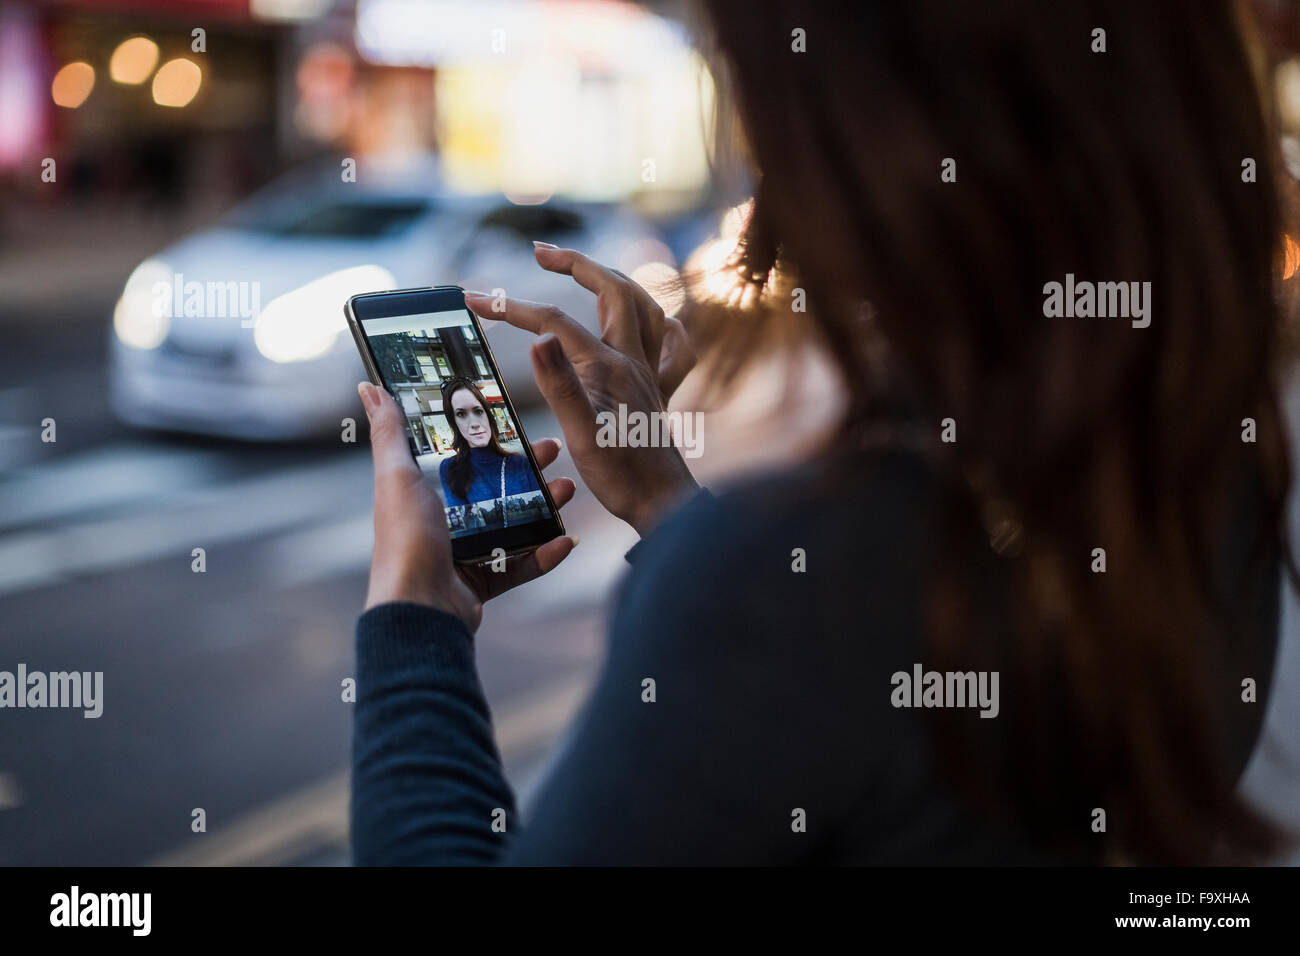 Prendre une femme par la route selfies Photo Stock